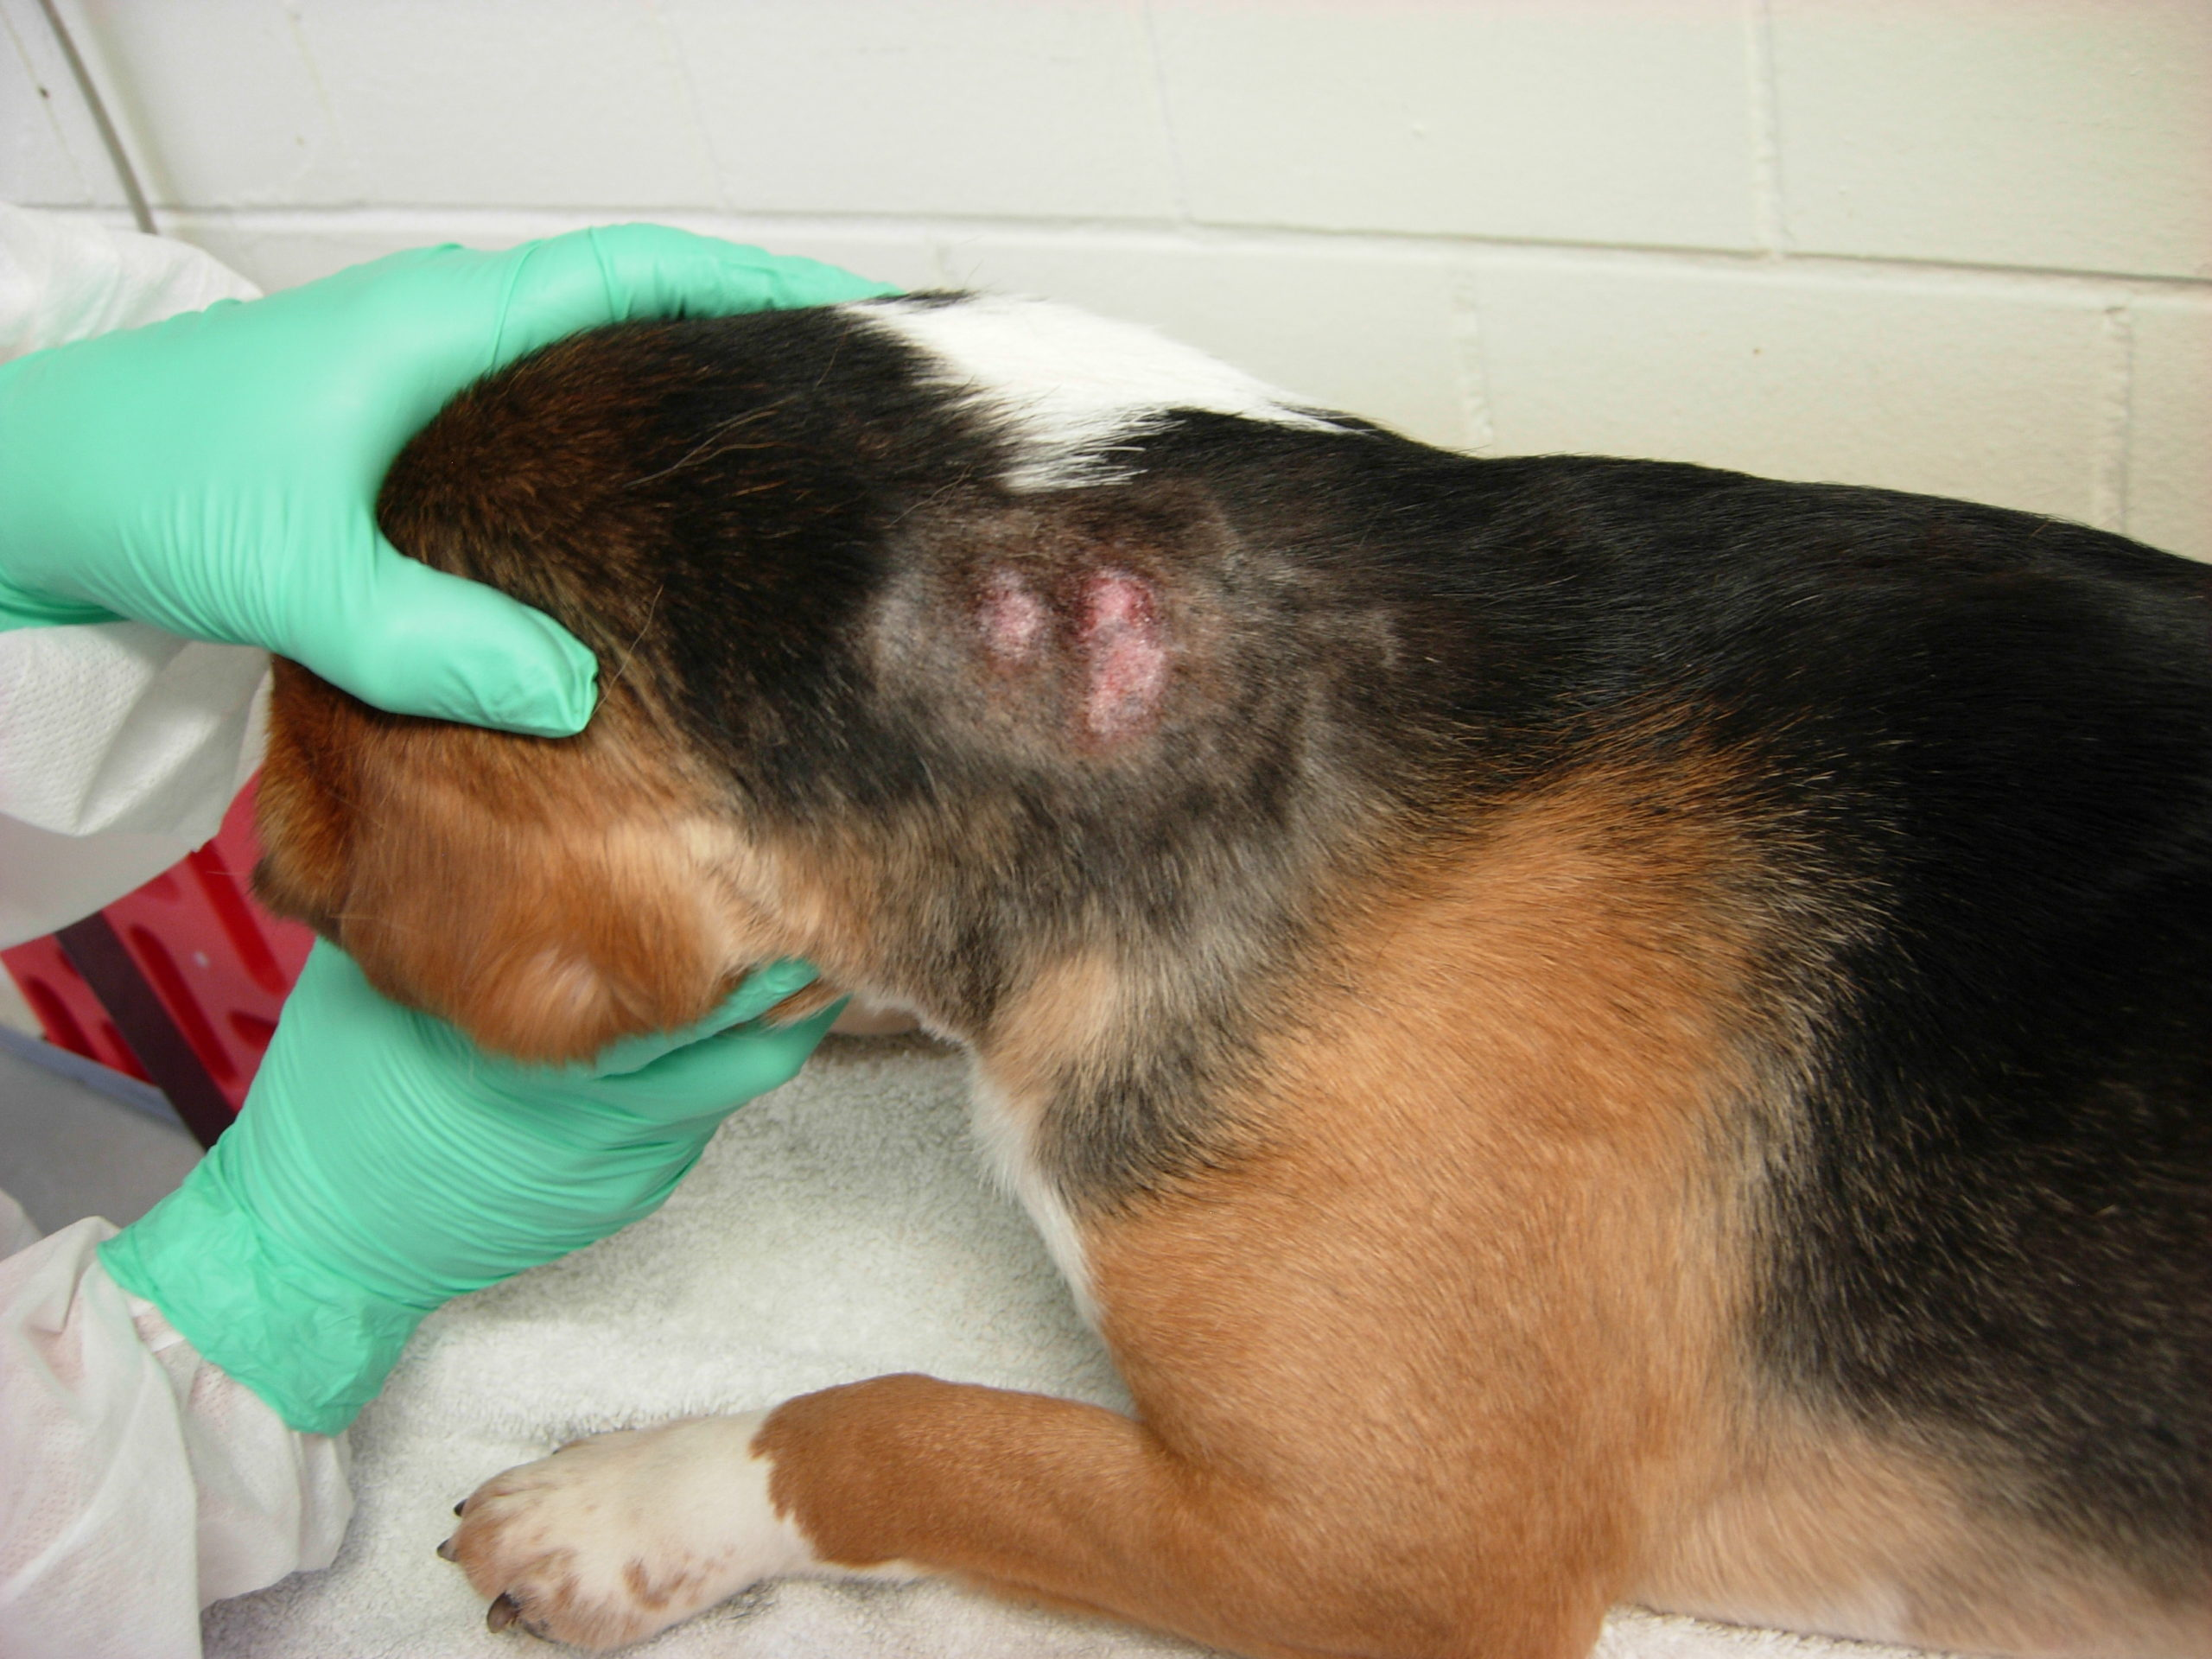 A dog is experimented on at an NIAID lab. (White Coat Waste Project)